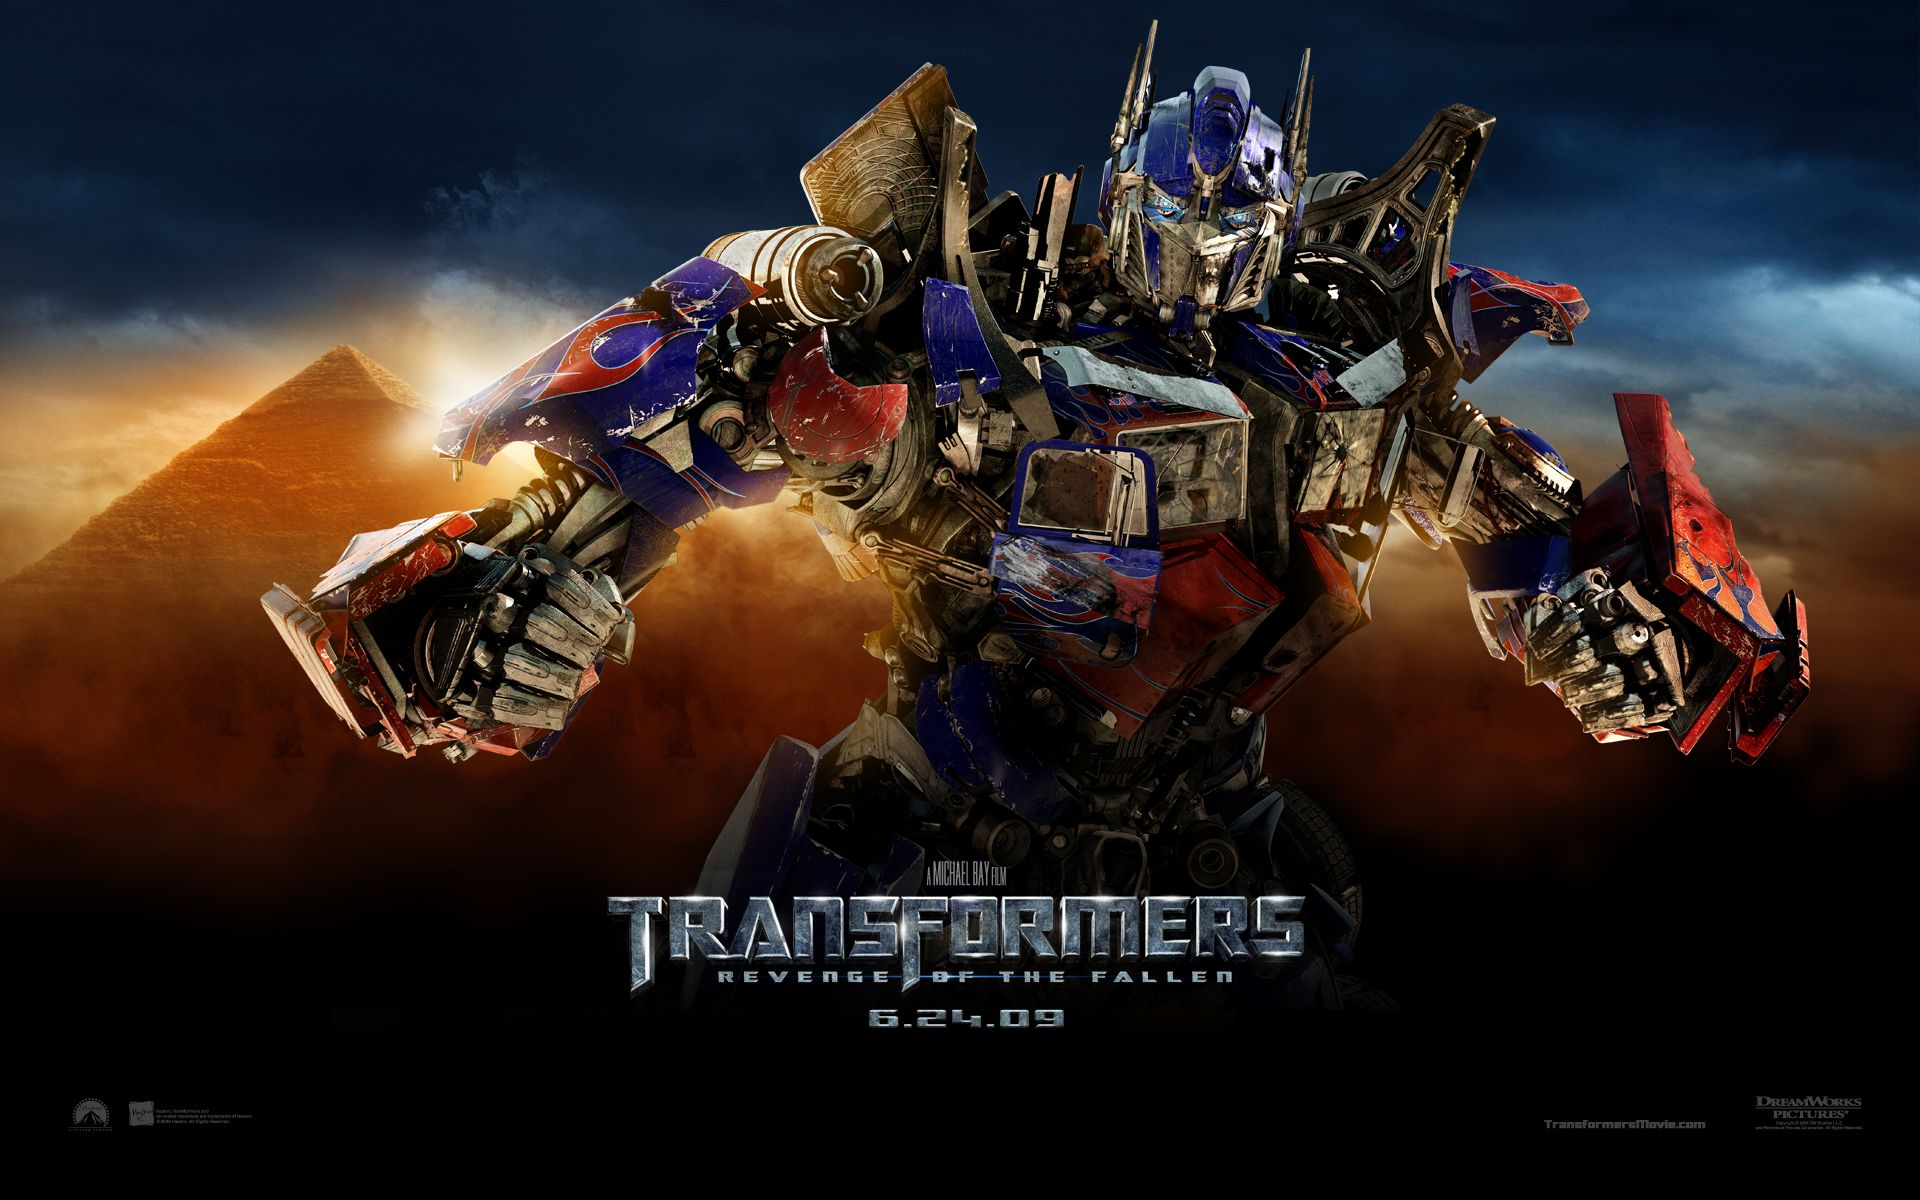 Pin By Aarush Mehra On Books Movies Revenge Of The Fallen Transformers Movie Transformers